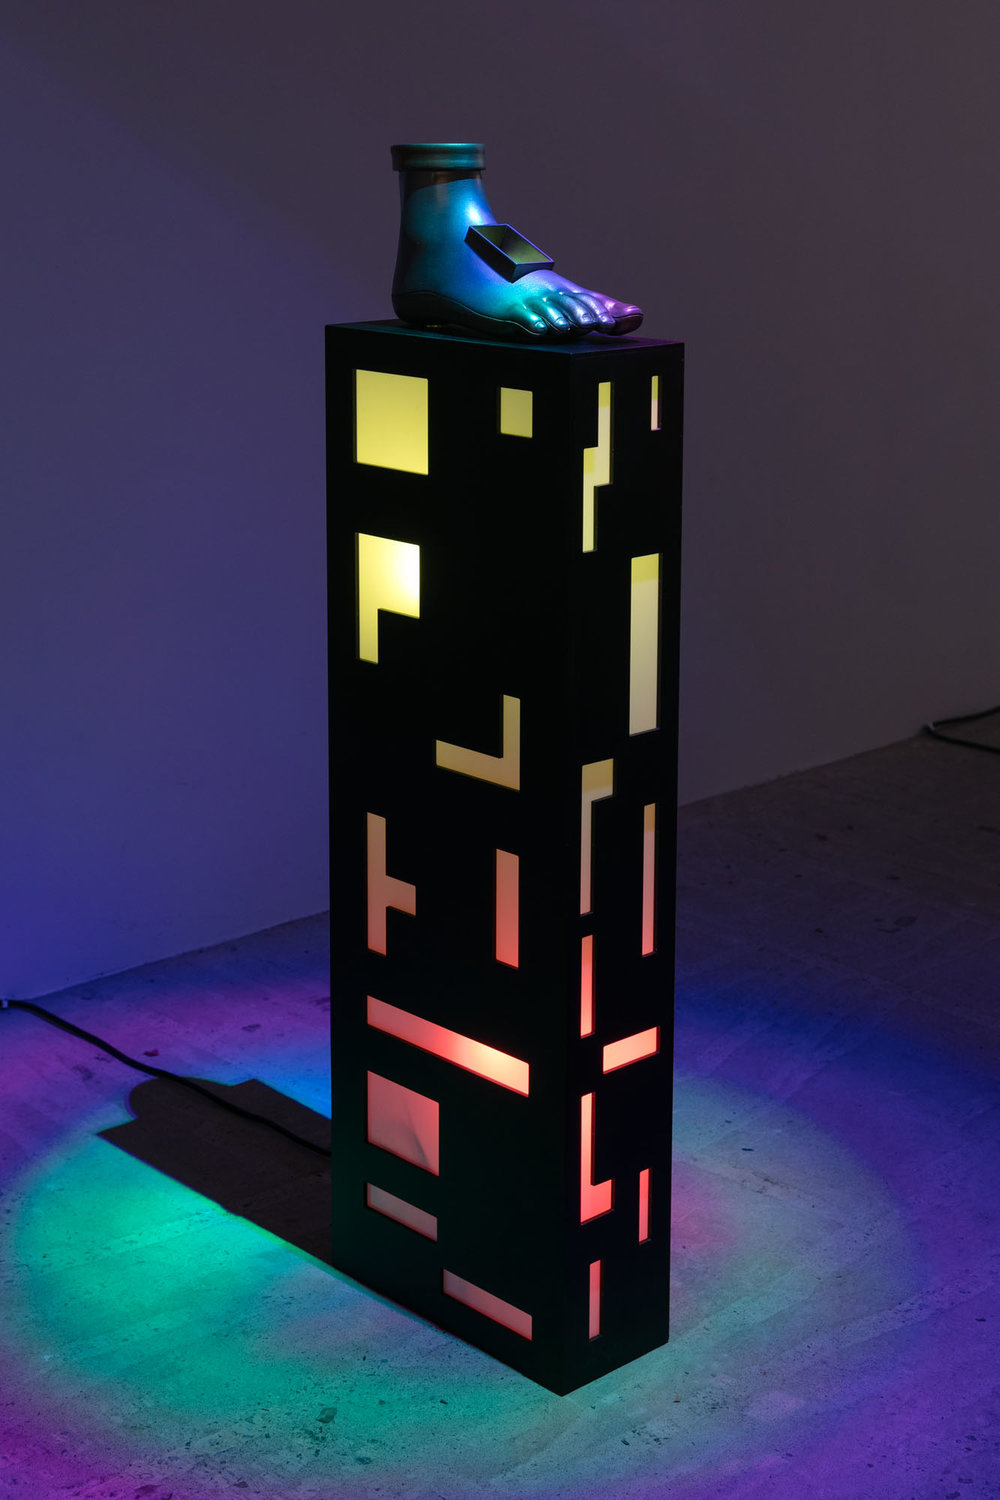 Phillip Birch   The Foot of Keran's , 2017  Plexiglass, LED lights, 3D printed plastic, painted enamel  47 x 14 x 6 inches  Unique